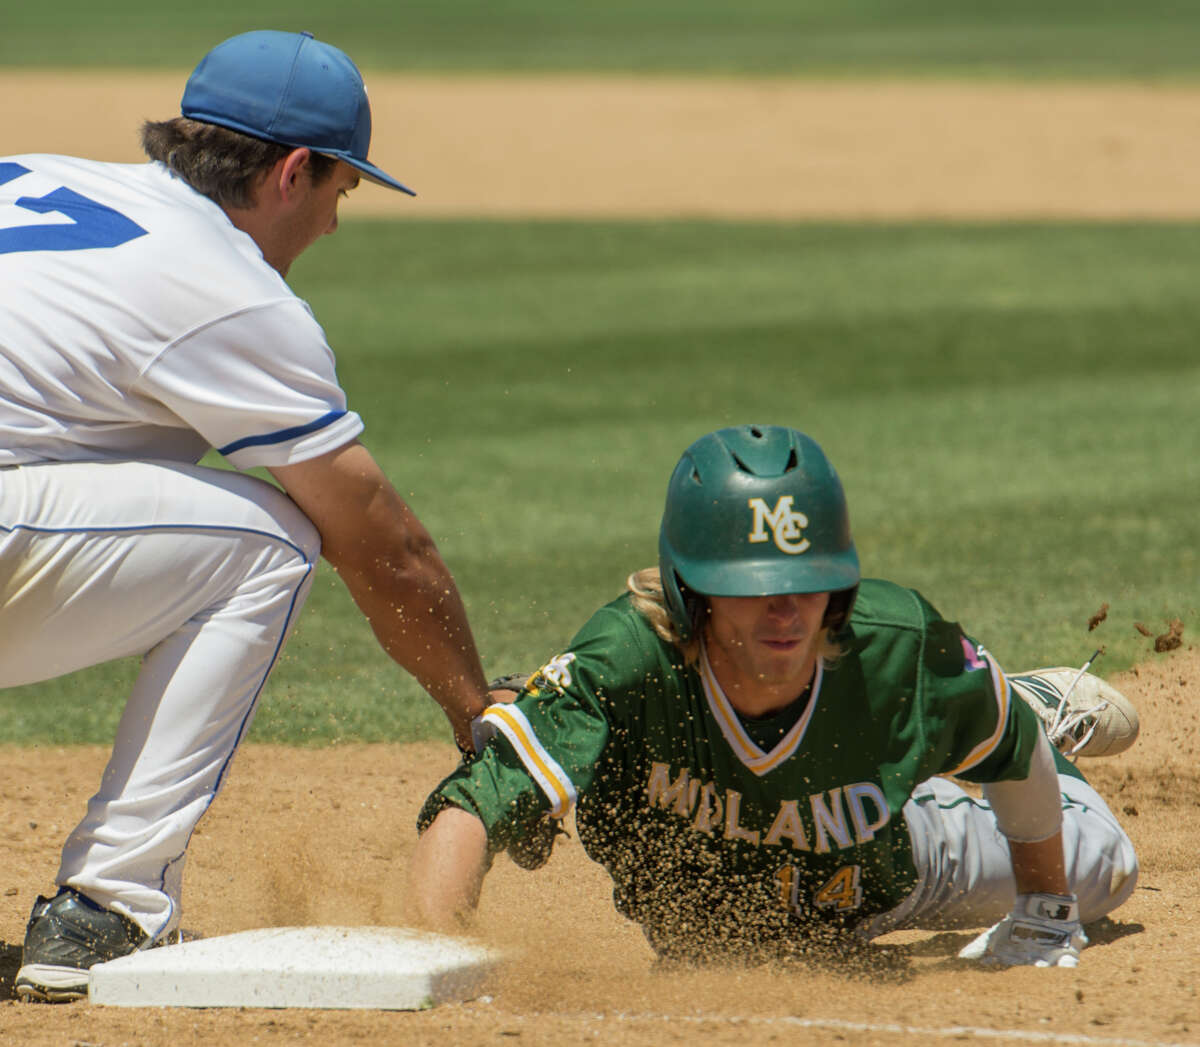 Midland College's Ethan Barker beats the tag on a pick-off attempt as Odessa College's Andrew Morales is late on the tag 5/05/17 in Odessa. Tim Fischer/Reporter-Telegram